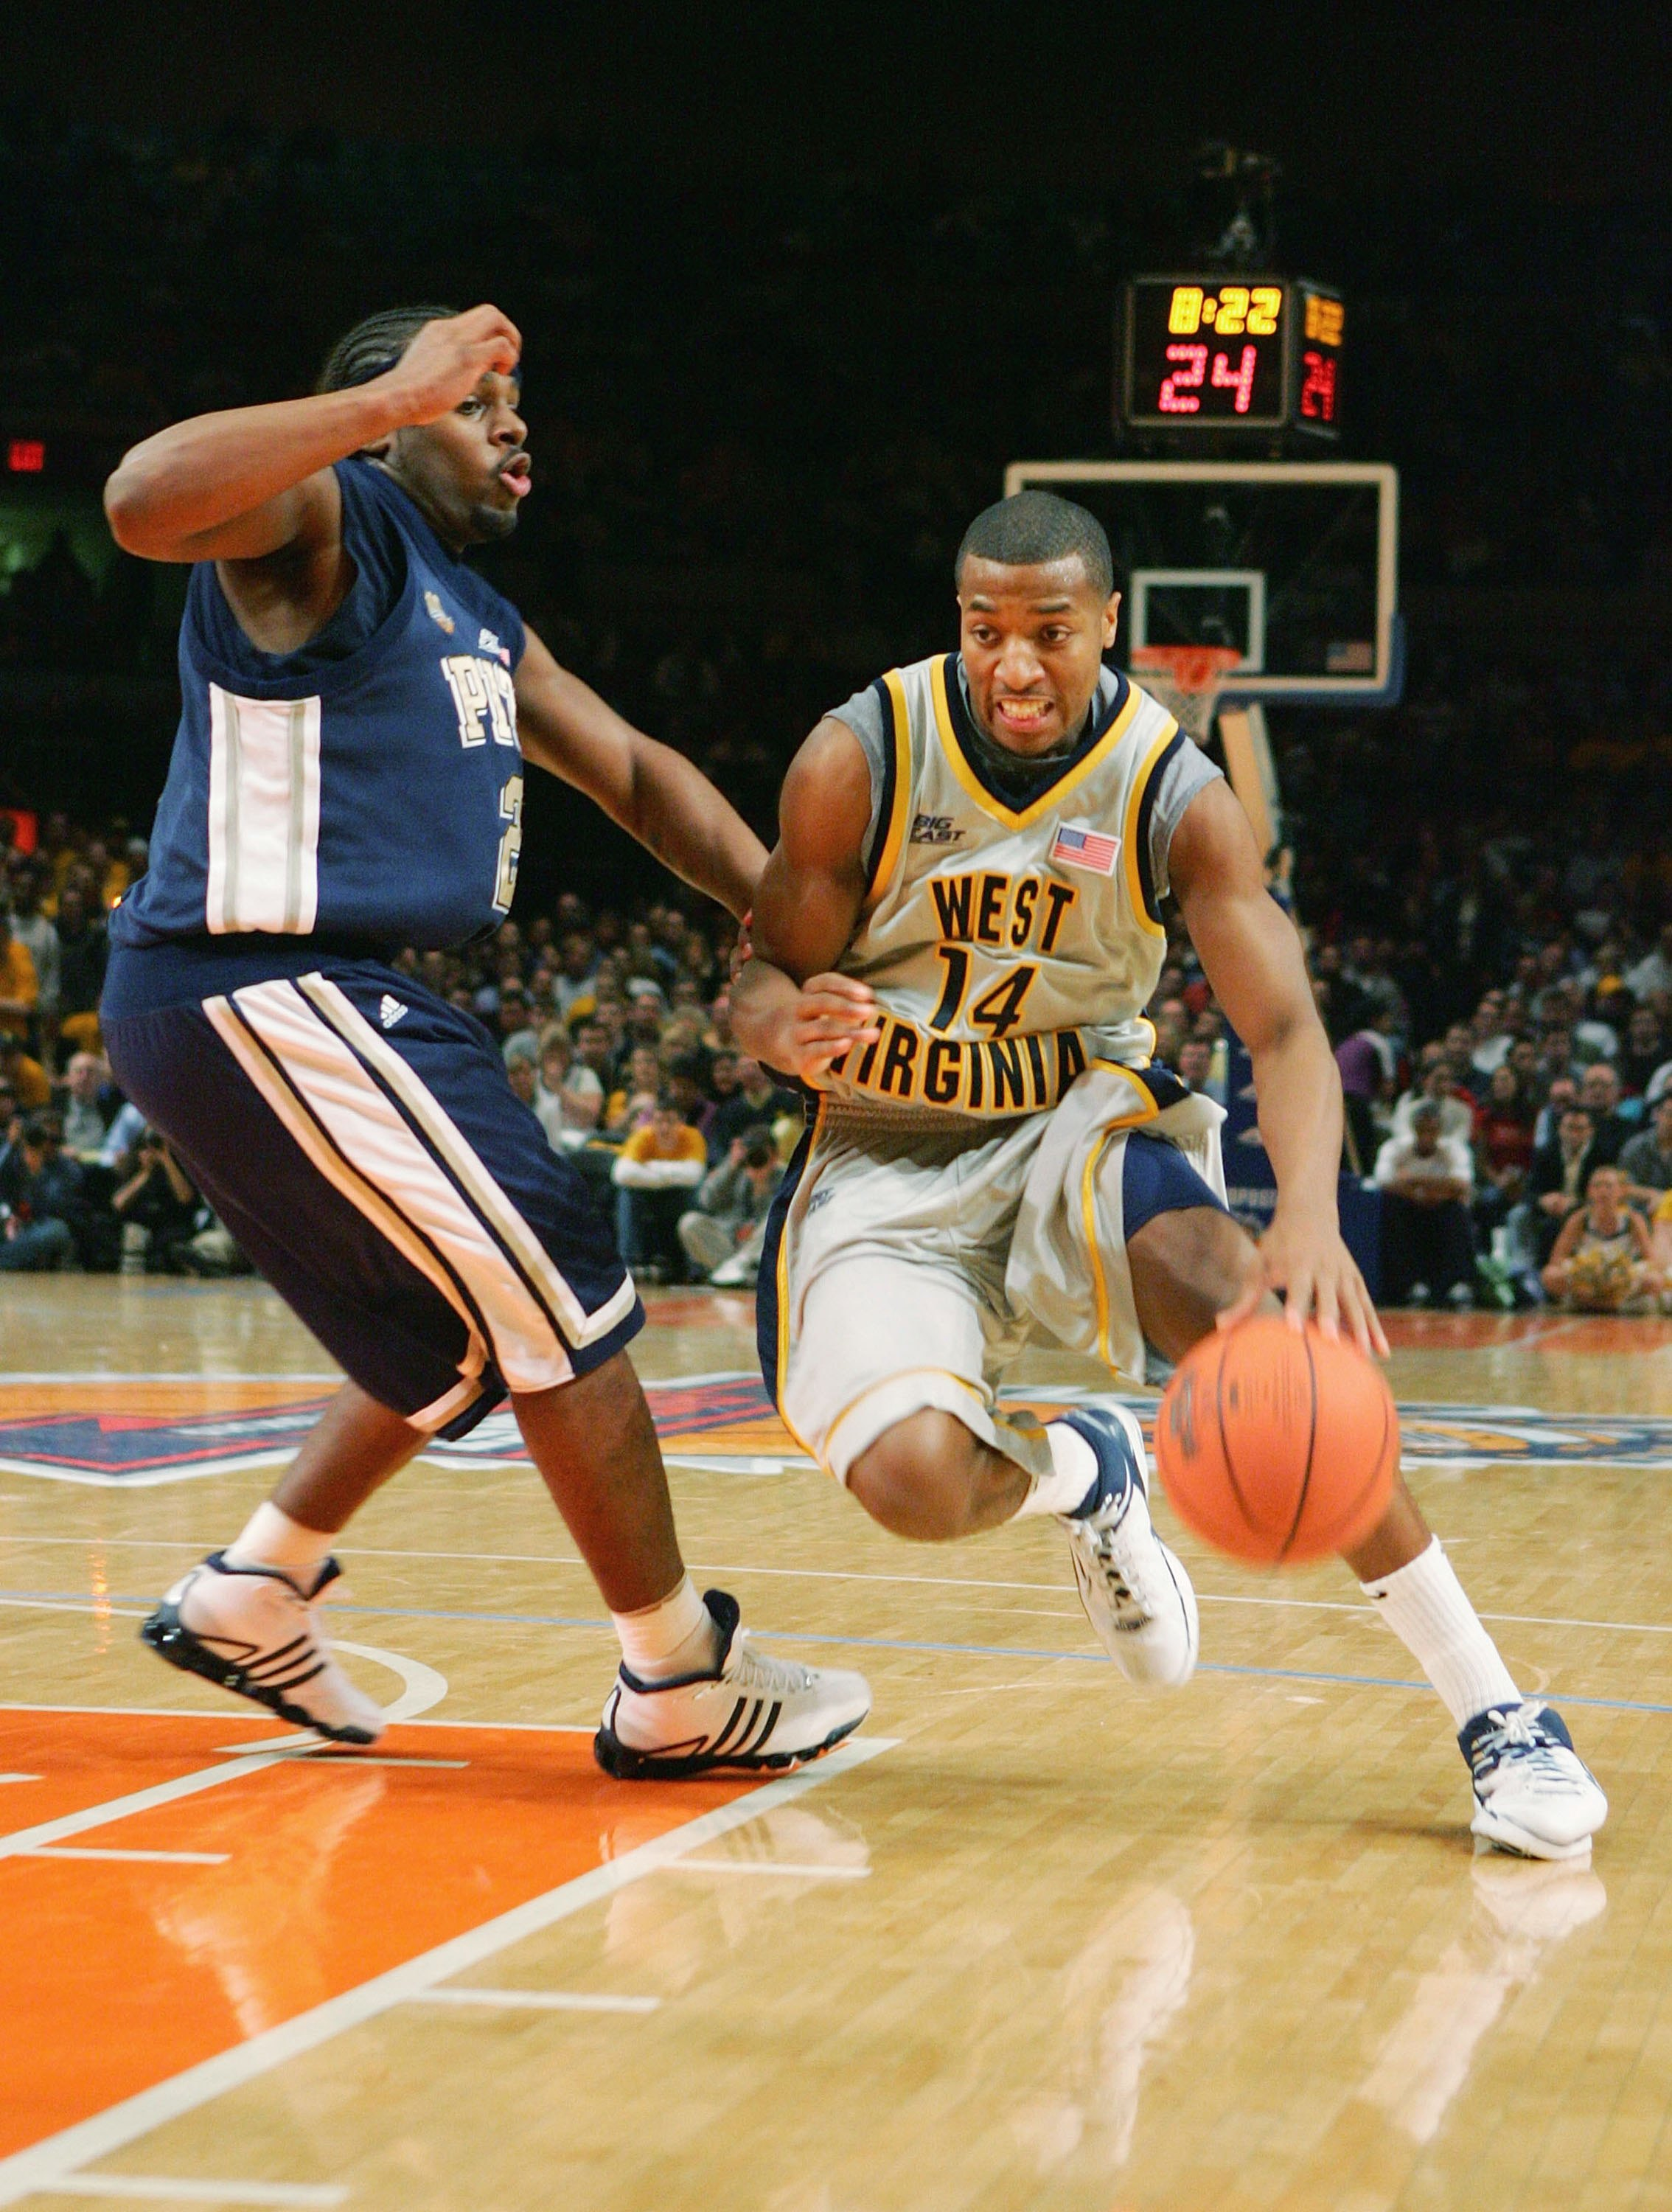 NEW YORK - MARCH 09:  Darris Nichols #14 of the West Virginia Mountaineers drives against Levance Fields #2 of the Pittsburgh Panthers during the quarterfinals of the Big East Men's Basketball Championships at Madison Square Garden March 9, 2006 in New Yo